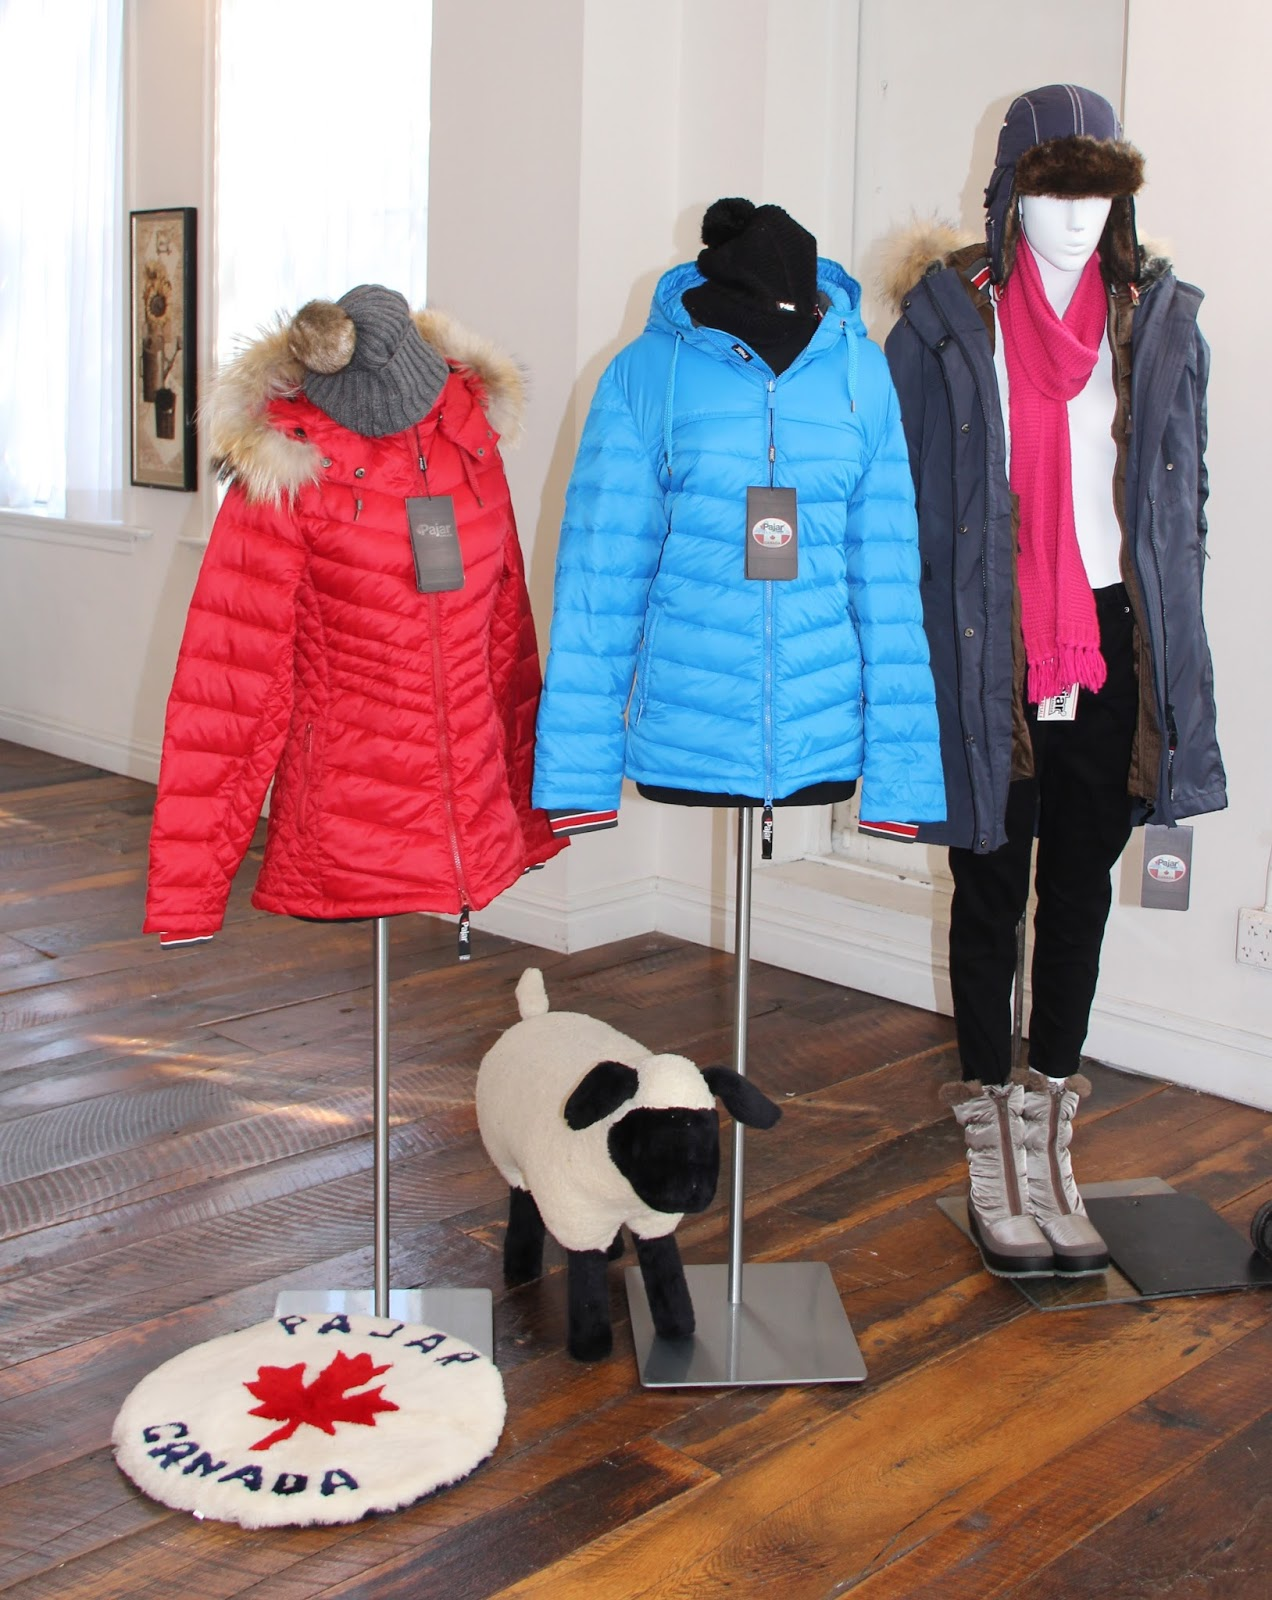 40f71f661c down jackets are tapered to flatter and quilting pattern-chevron like- is  fitted...belt them too for more definition. Middle Courtney and  Left-Samantha-hit ...